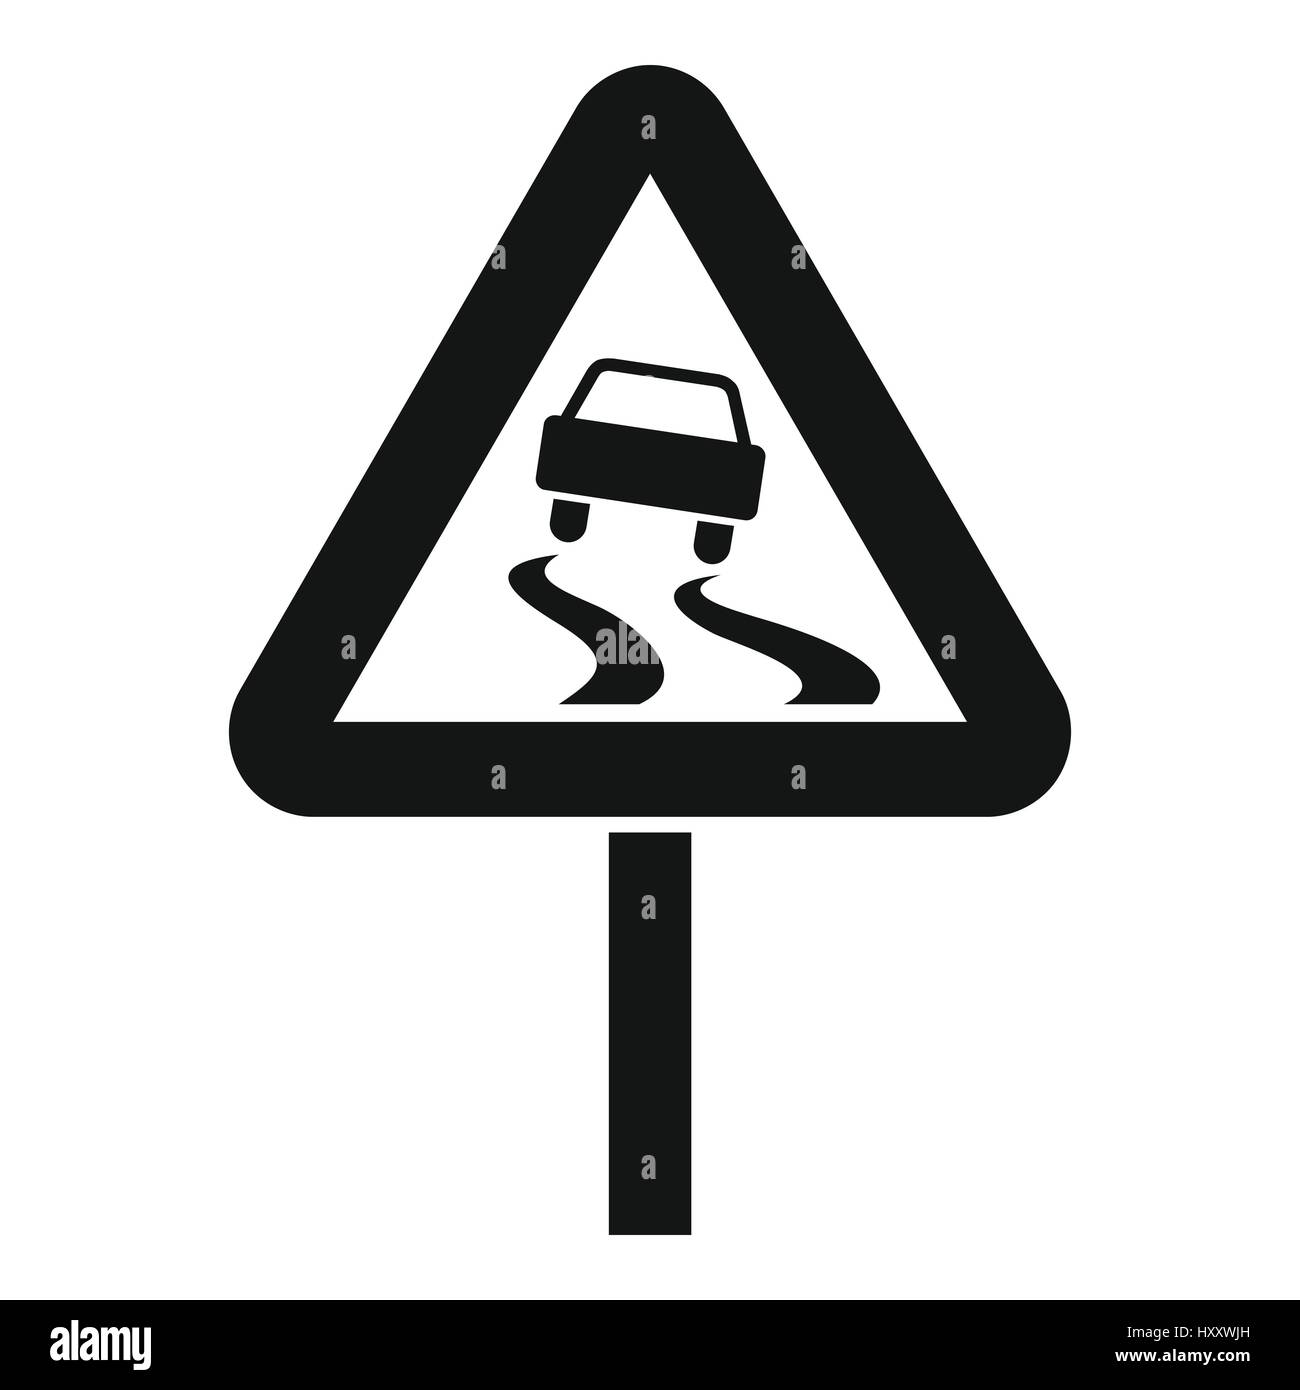 Slippery when wet road sign icon, simple style - Stock Image